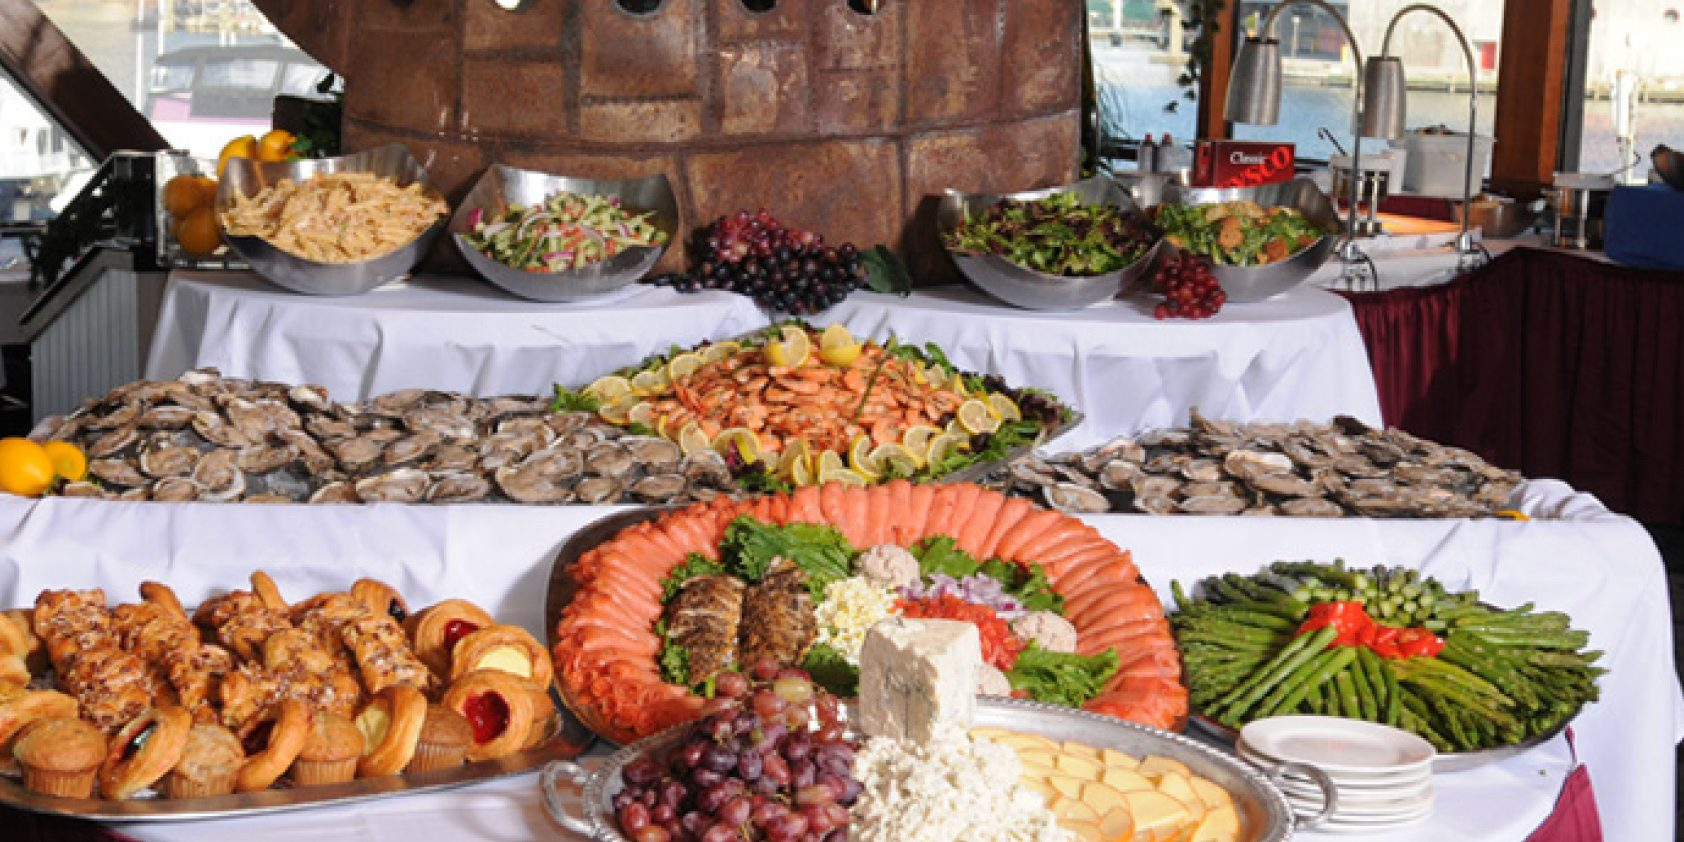 Brunch Buffet Sunday Champagne Brunch Features A Limitless Buffet To Include